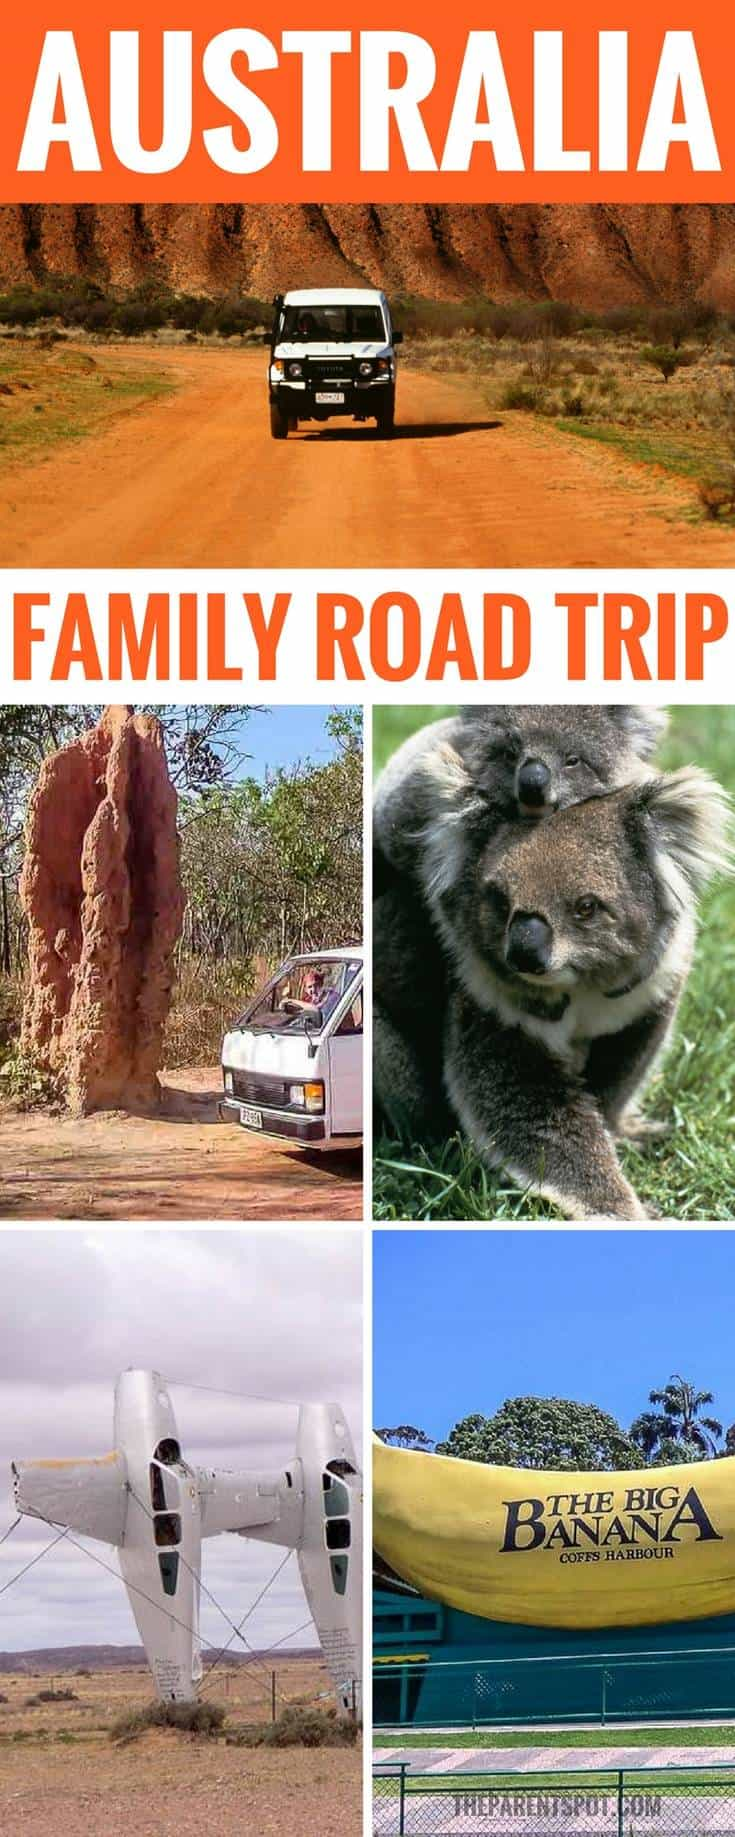 Visit all the Big Things in Australia with the kids on a family road trip!